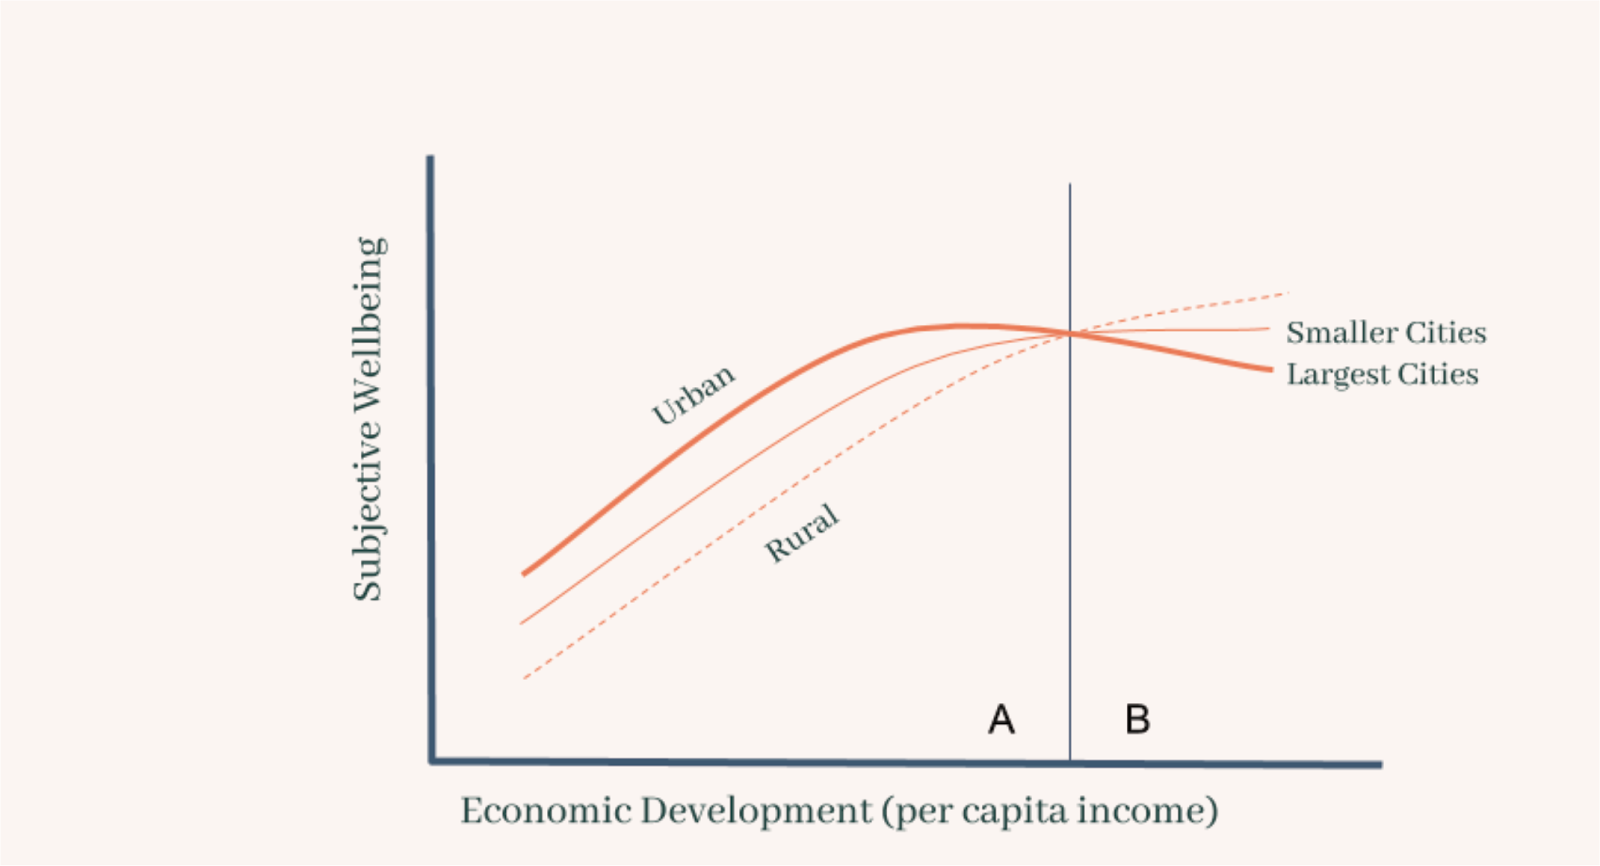 graph showing that subjective wellbeing is the highest in large cities, lower in smaller cities, and lowest in rural area until a breaking point in economic development (per capita income) where this reverses